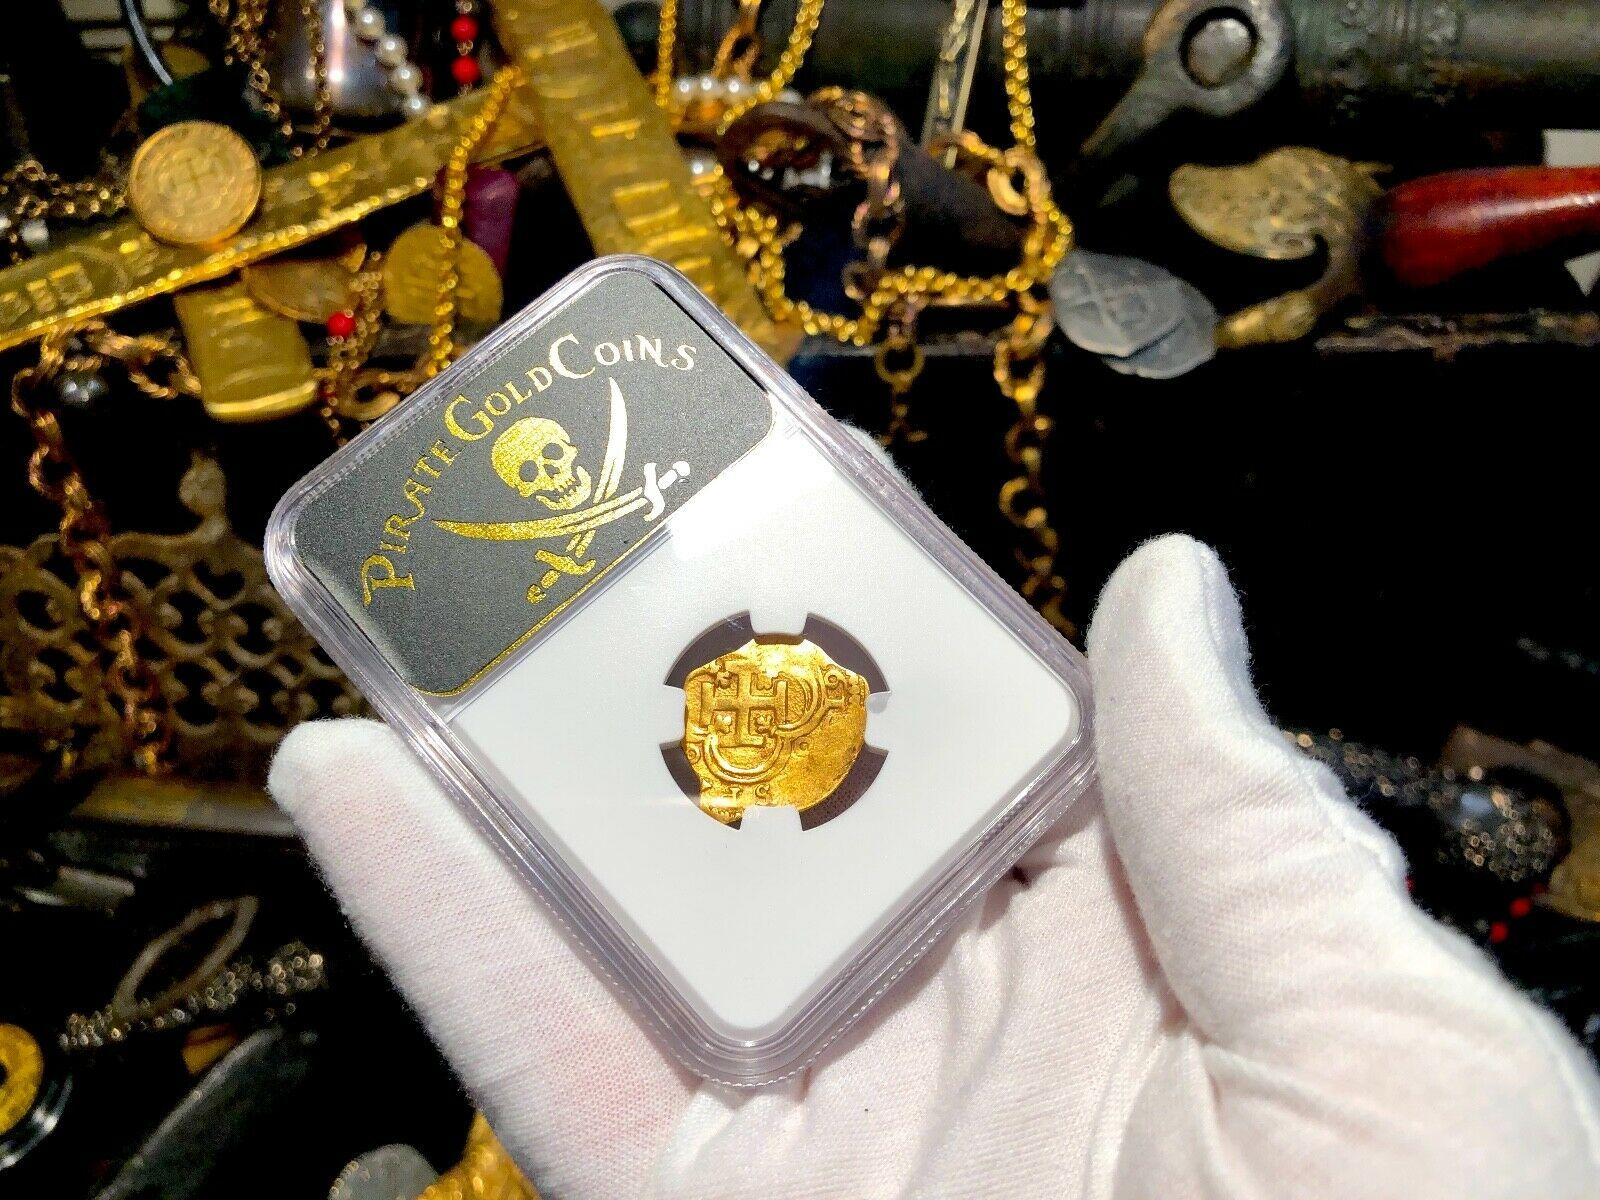 """SPAIN 2 ESCUDOS 1615 """"DATED"""" NGC 53 PIRATE GOLD COINS TREASURE DOUBLOON"""